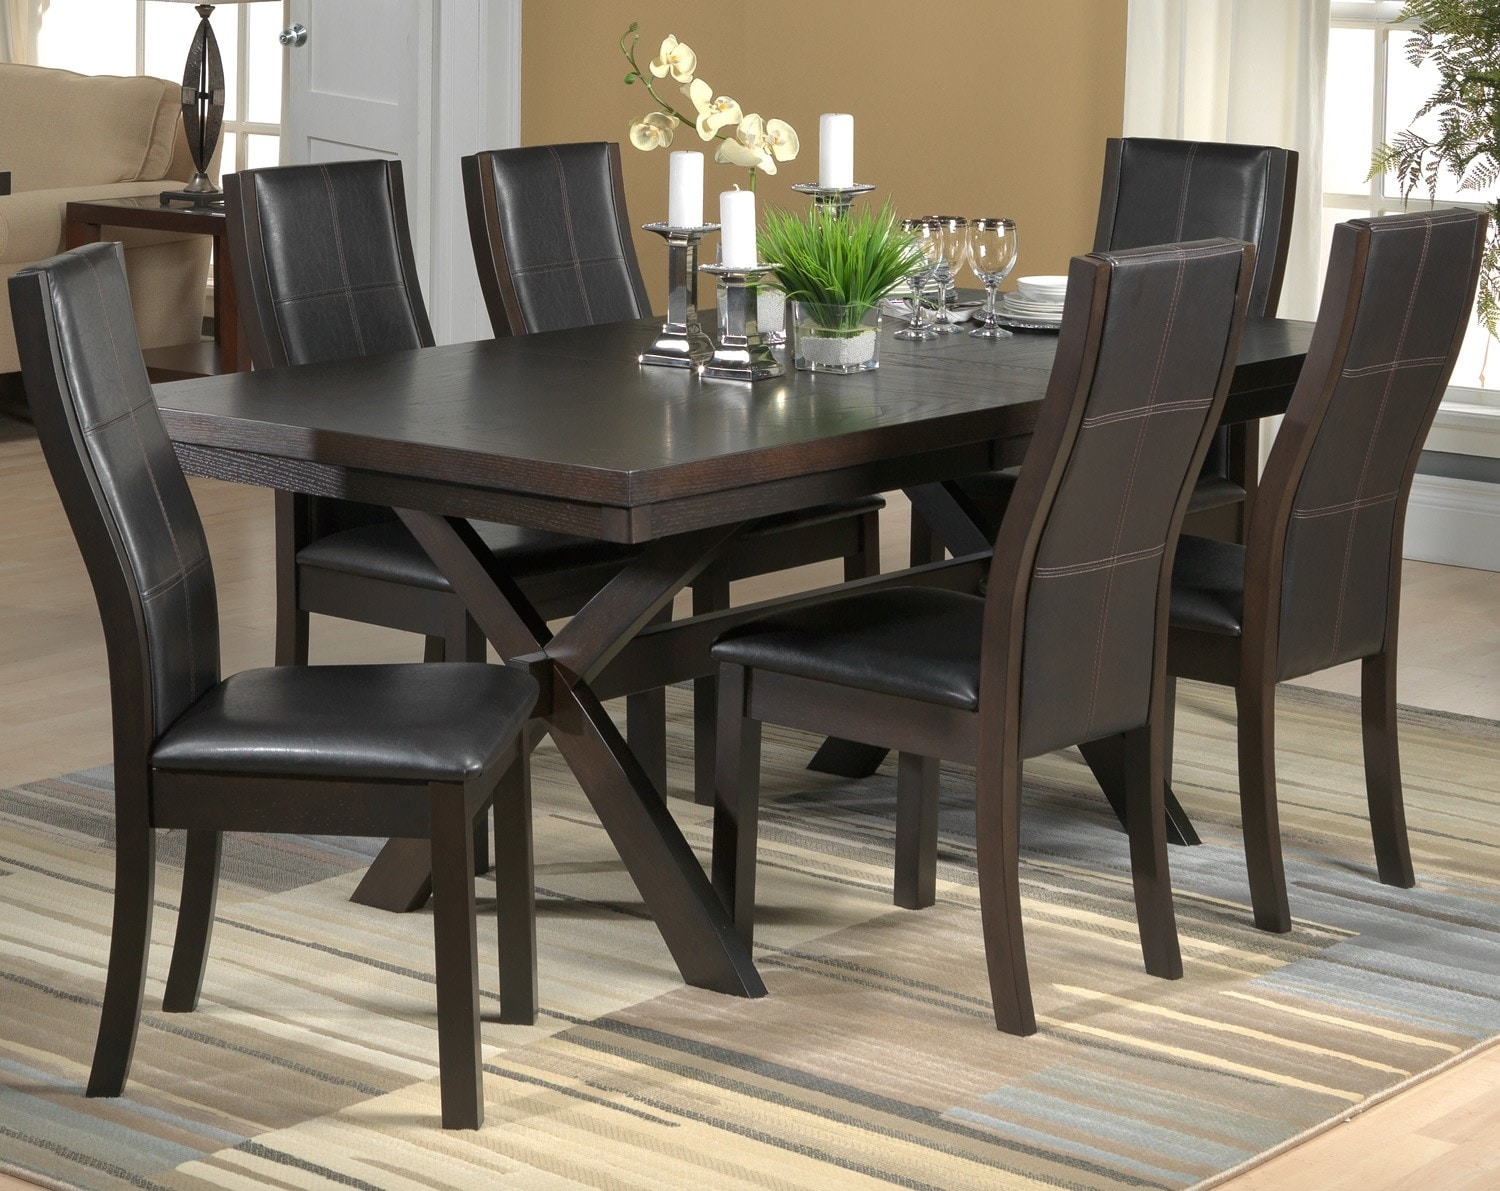 Dining Room Furniture - Grethell 7-Piece Dining Room Set - Espresso